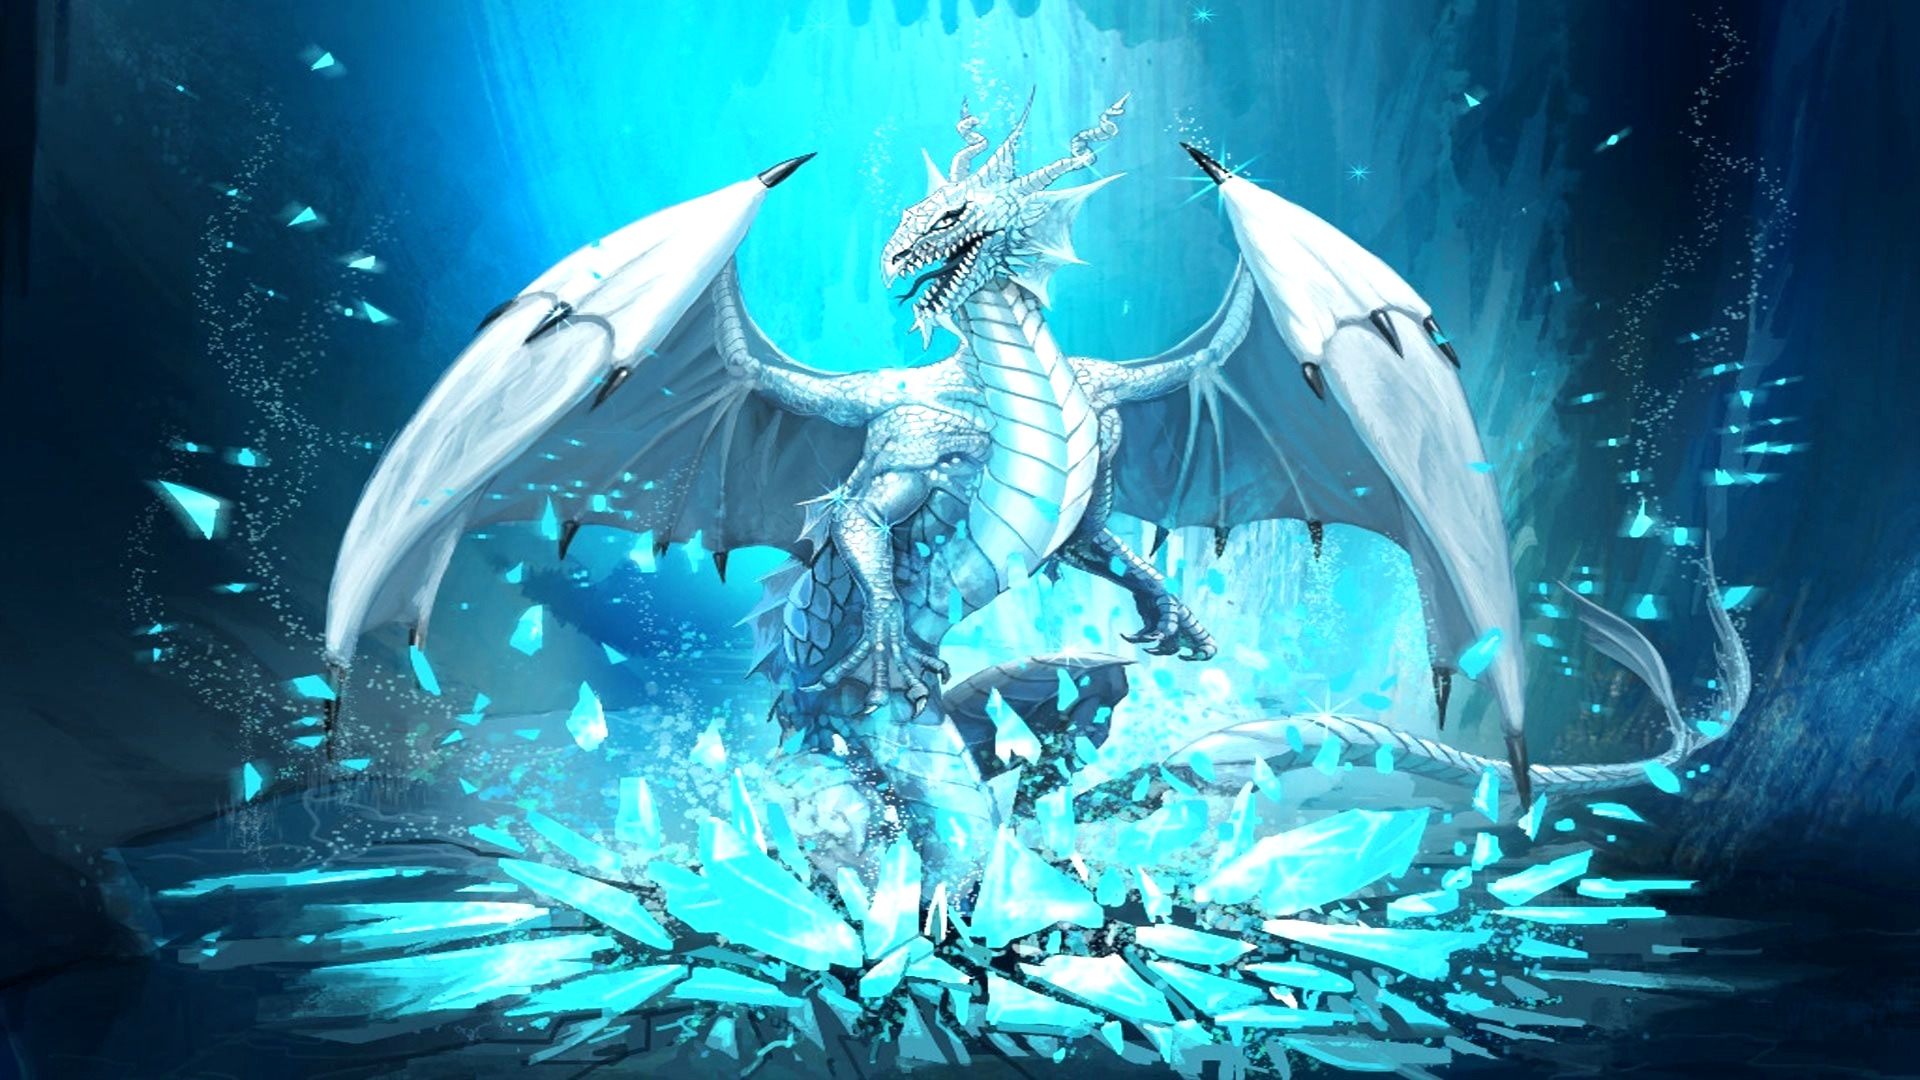 Game Of Thrones Ice Dragon Wallpaper HD